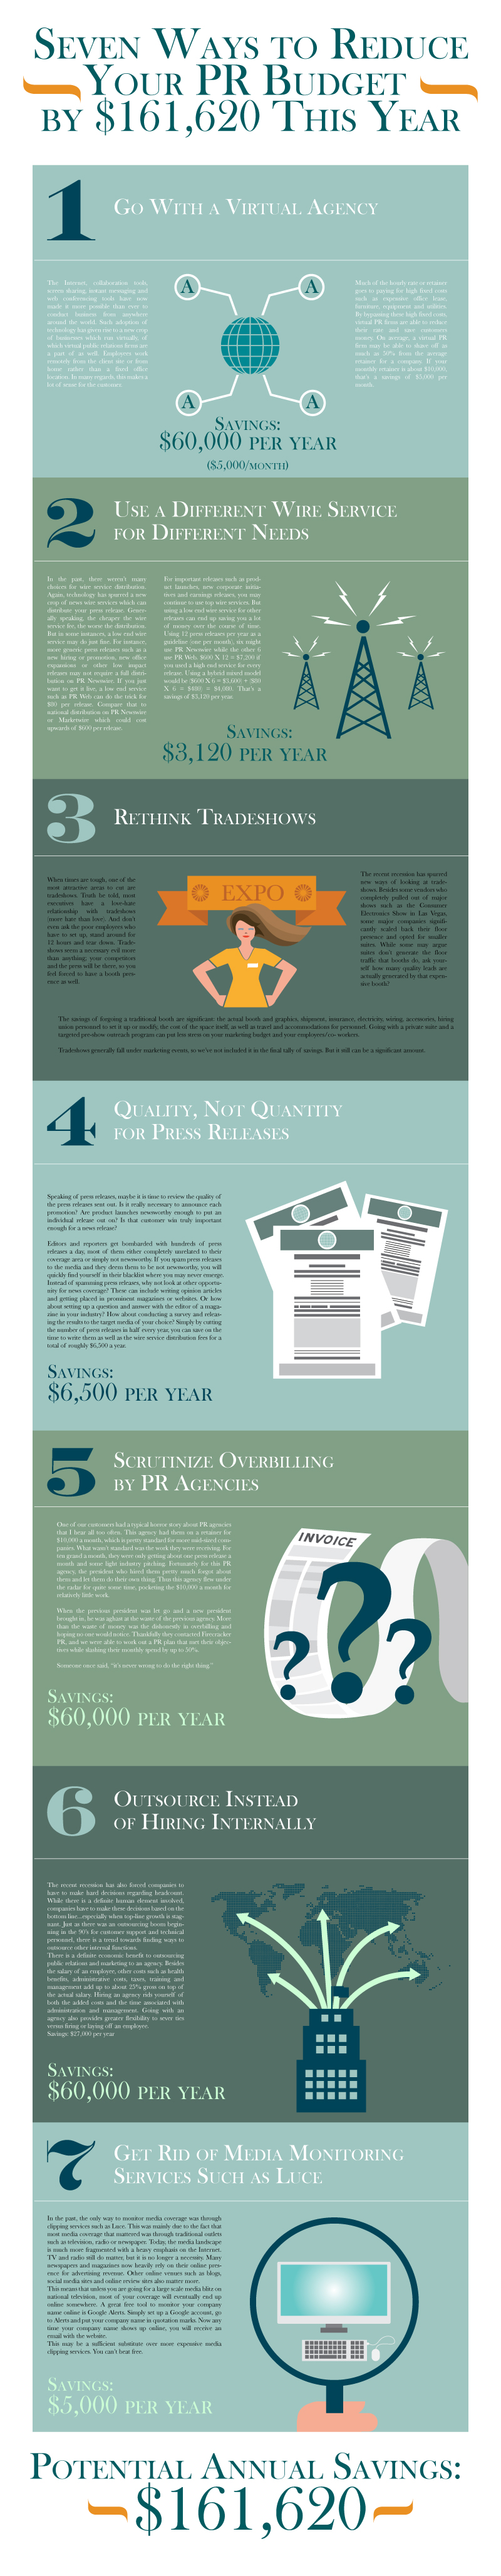 seven ways to reduce your  pr budget